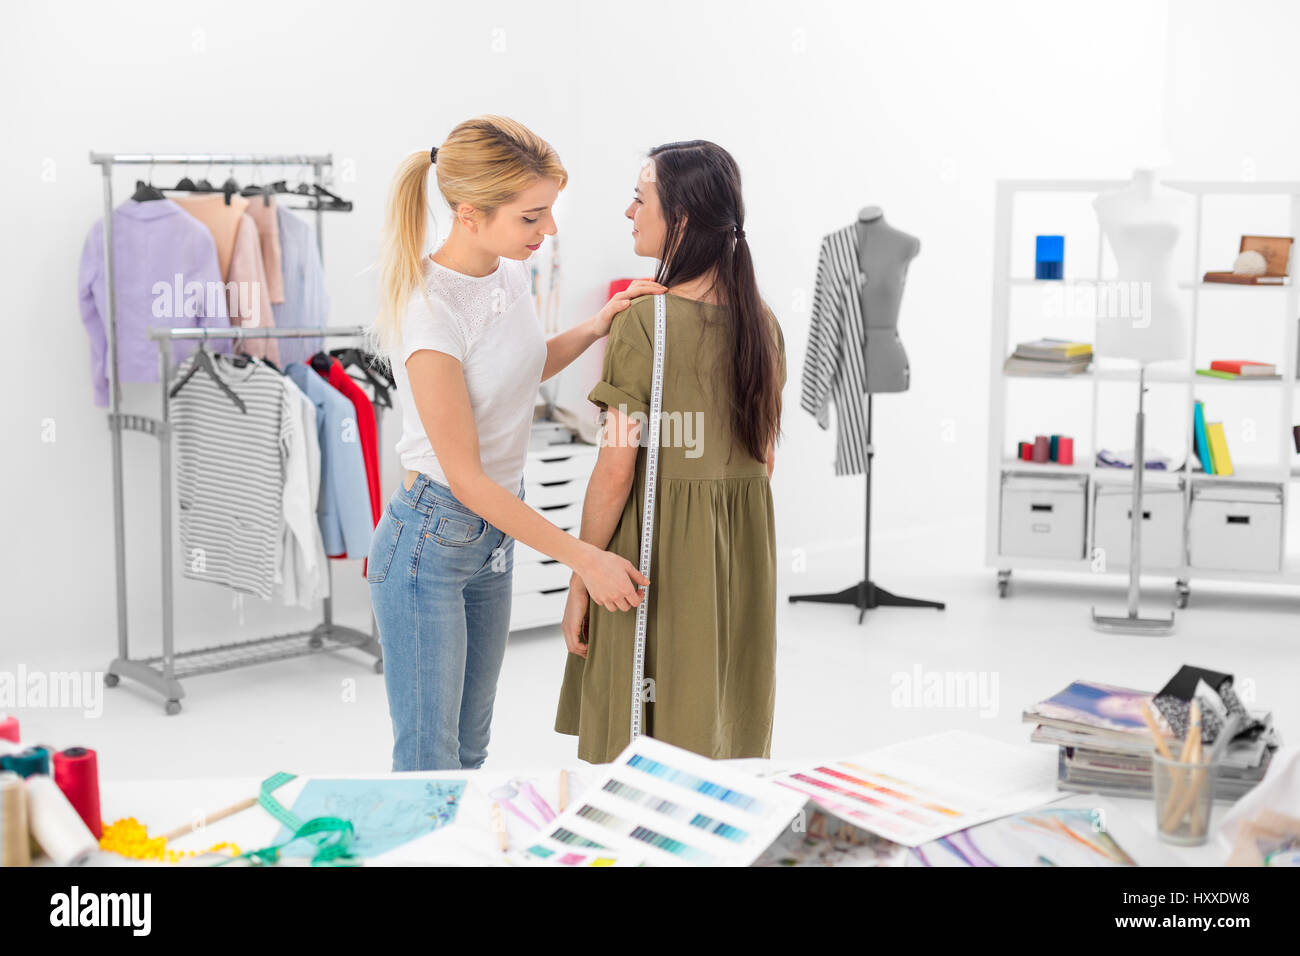 young dressmaker gets hight measures of client in the showroom - Stock Image